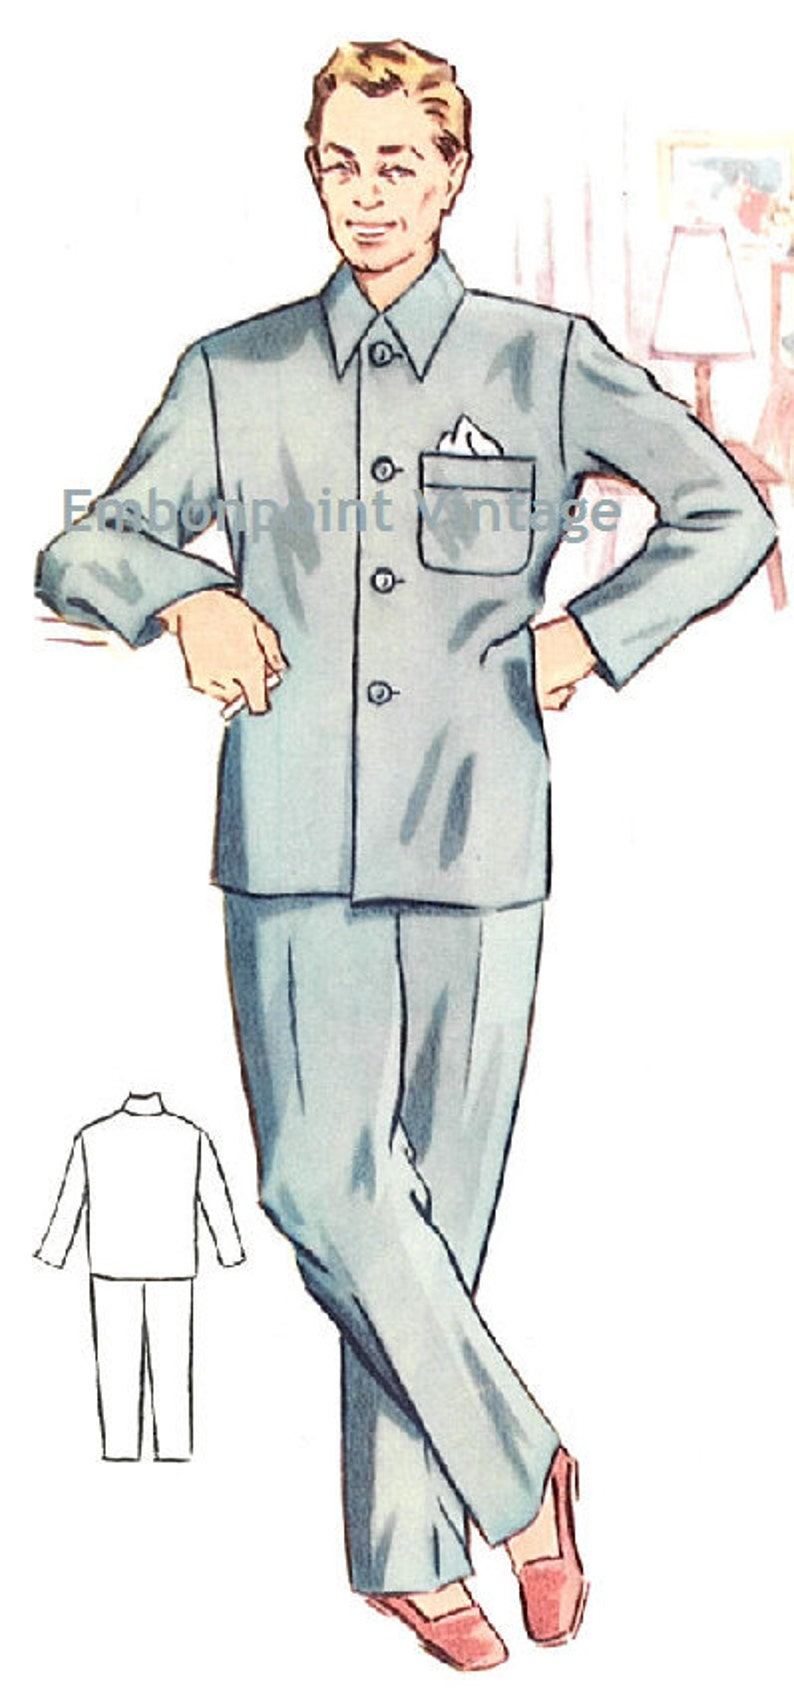 1950s Sewing Patterns | Dresses, Skirts, Tops, Mens Plus Size (or any size) Vintage 1950s Mens Pyjama Shirt Pattern - PDF - Pattern No 185a Edward Pyjama Shirt $8.38 AT vintagedancer.com